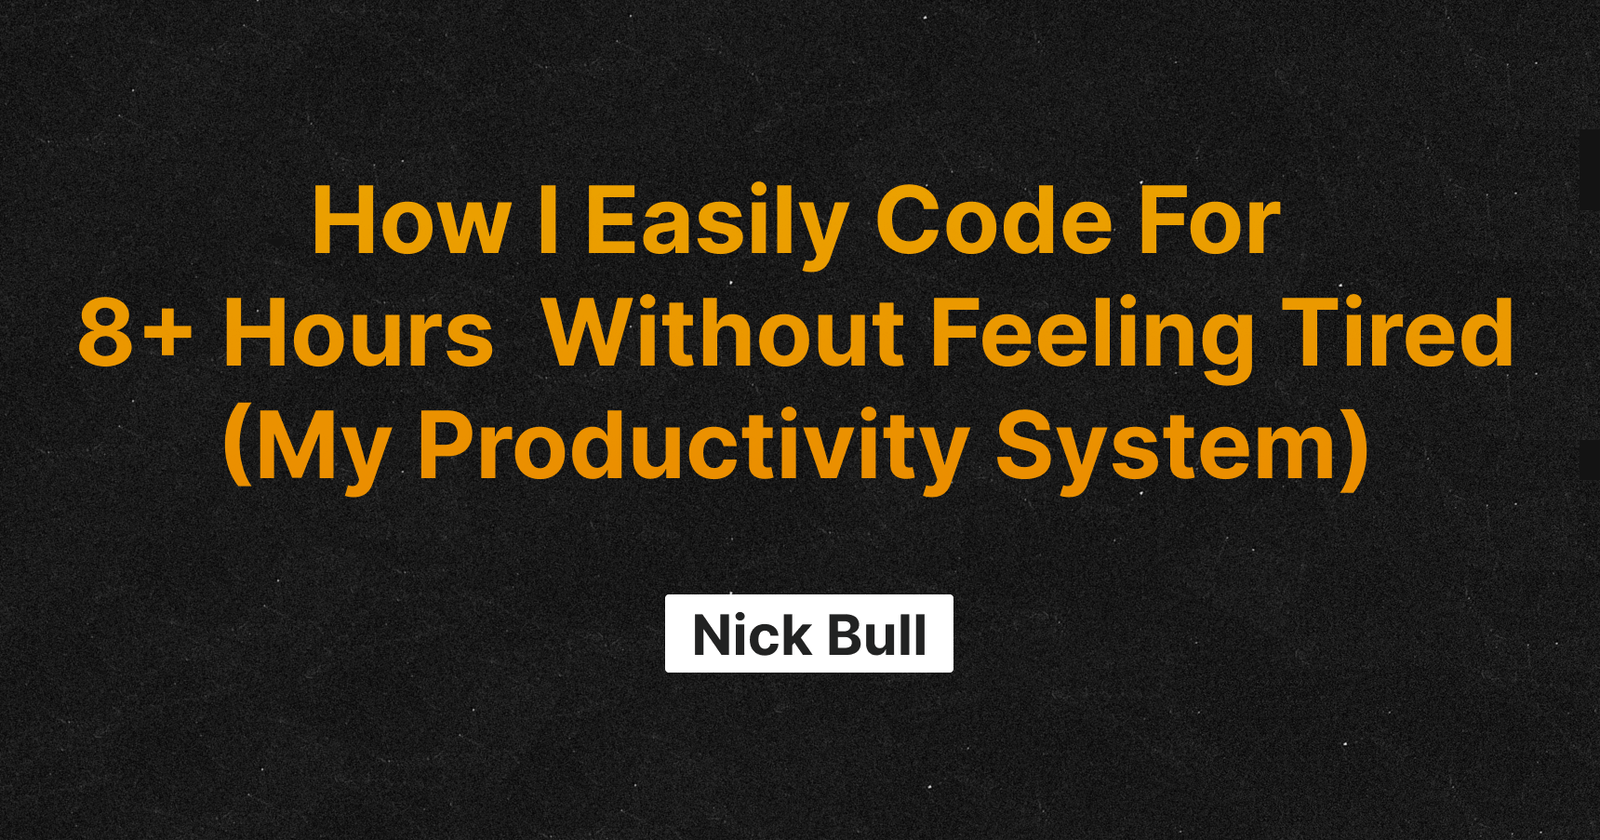 How I Easily Code For 8+ Hours Without Feeling Tired (My Productivity System)